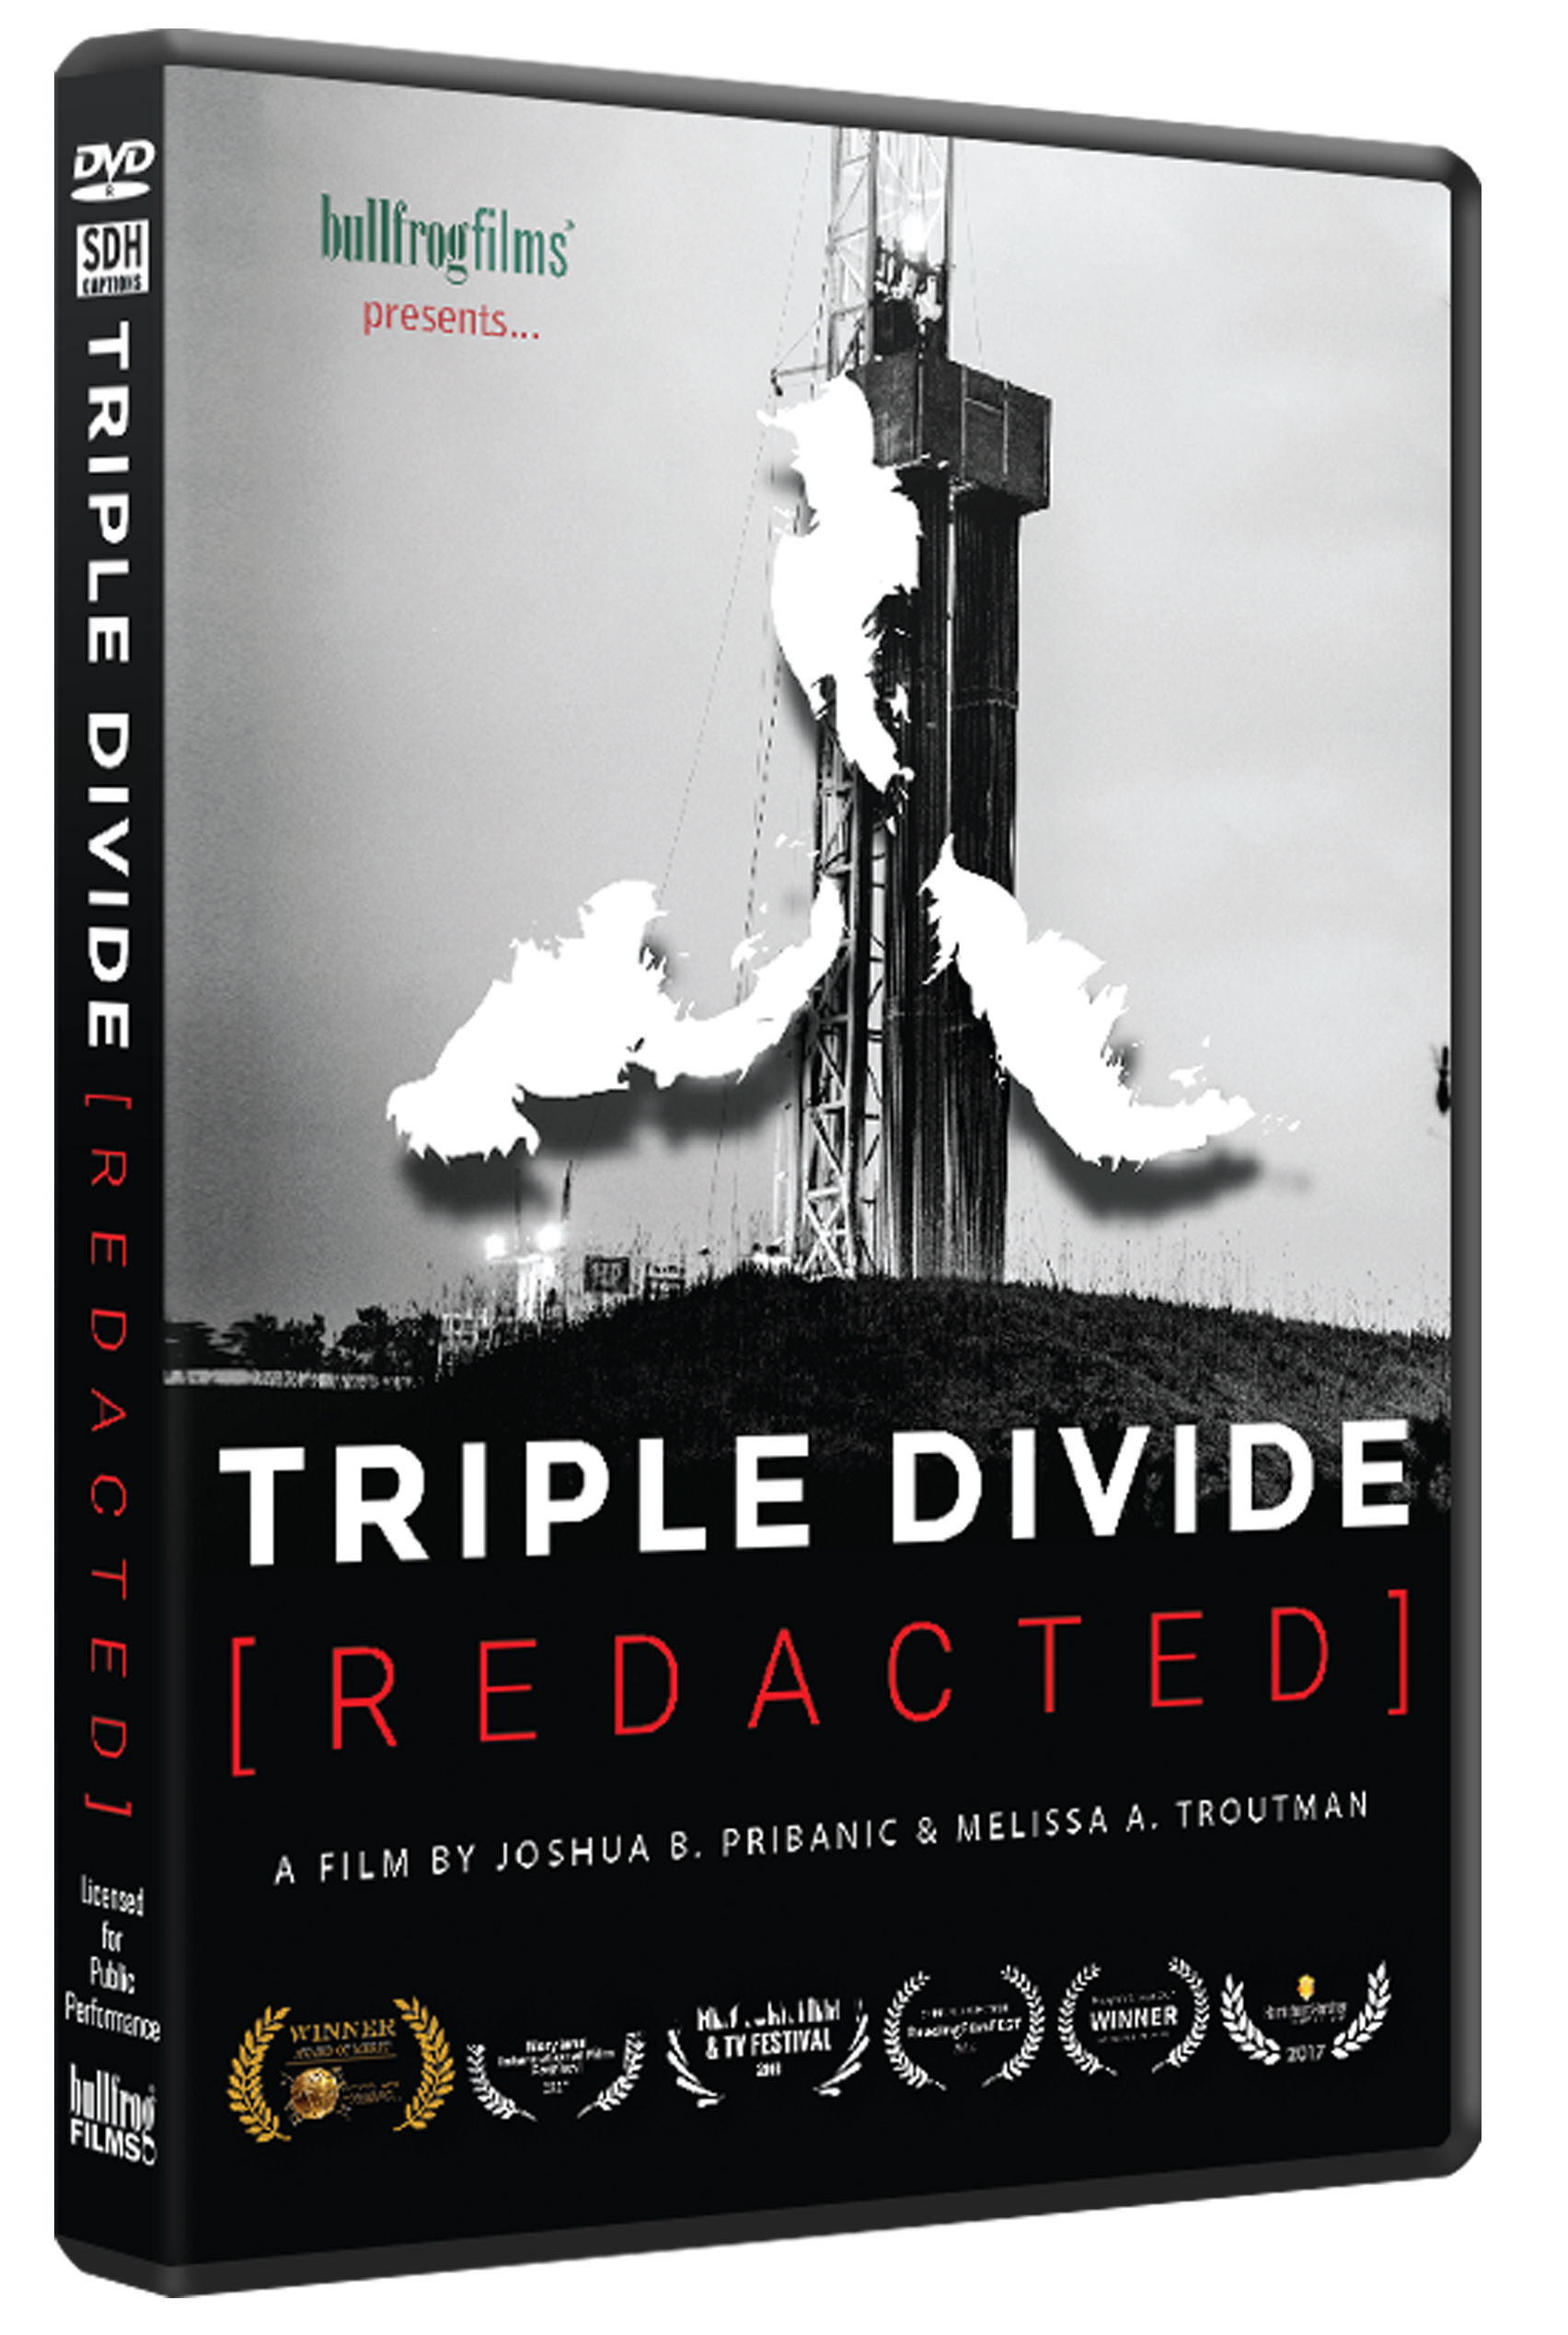 TRIPLE DIVIDE [REDACTED]